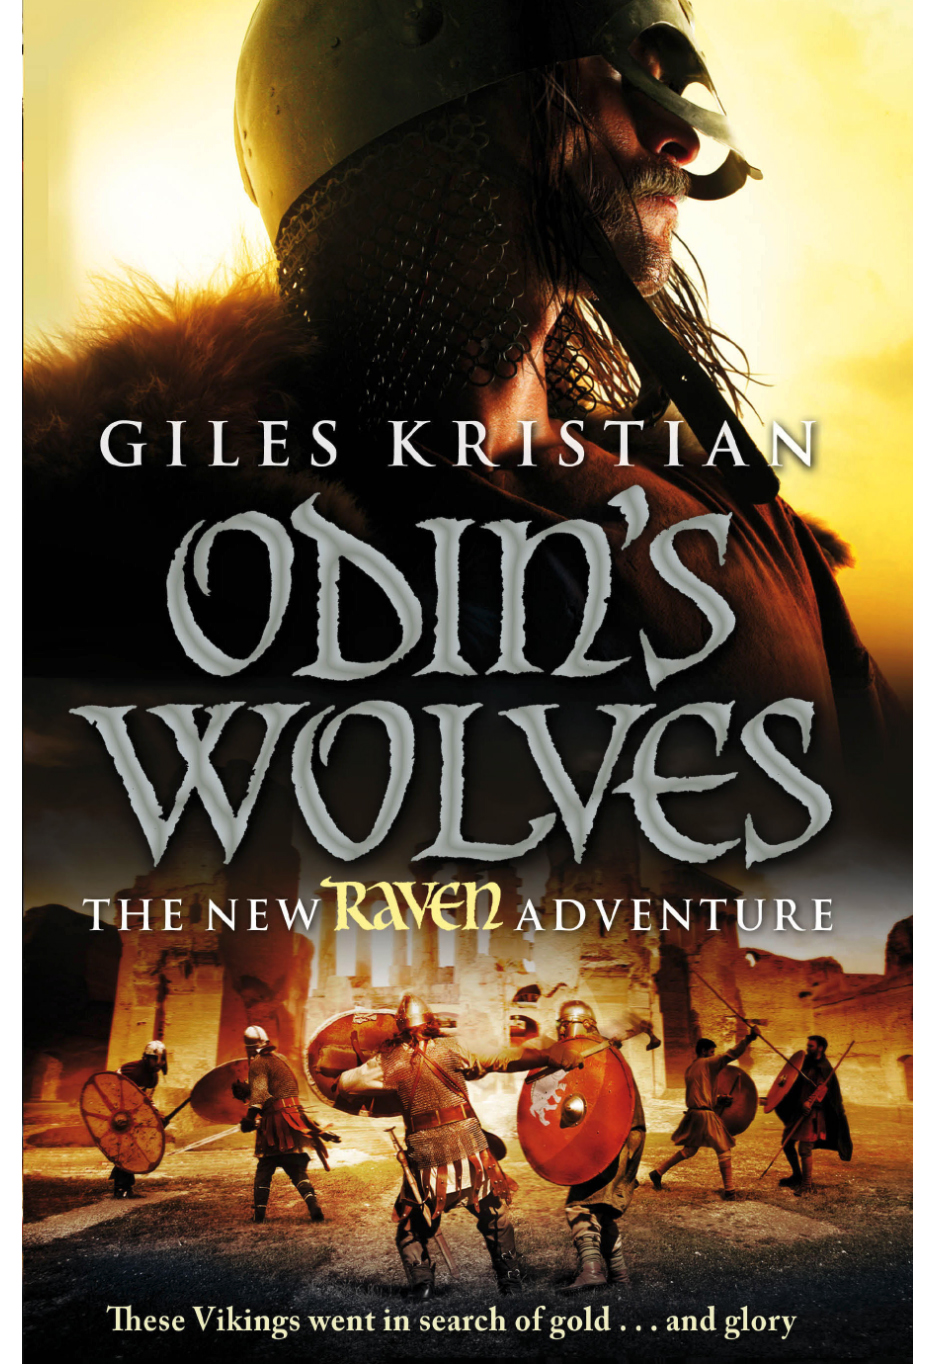 Odin's Wolves by Giles Kristian